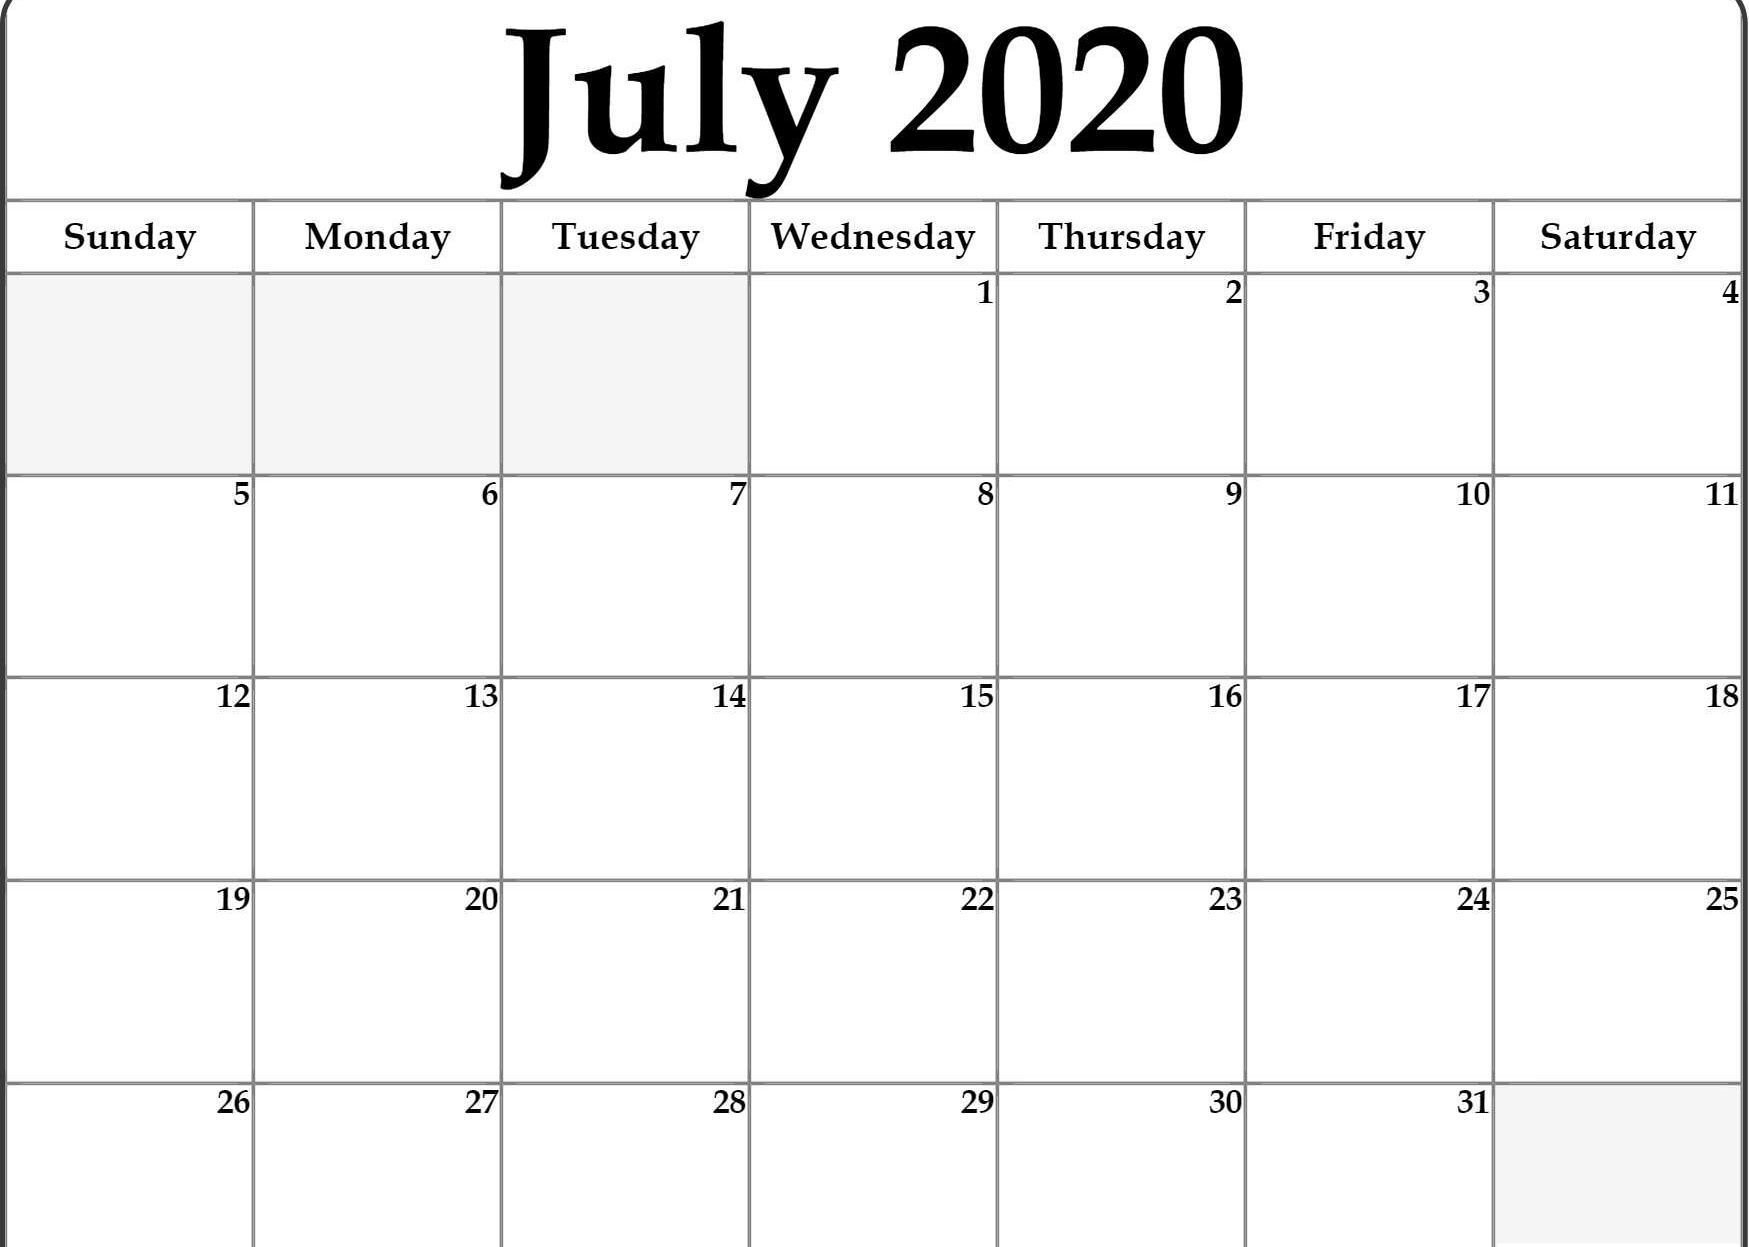 How To Printable Calendar Monthly Fill In In 2020 | July Weekly Fill In Calendar